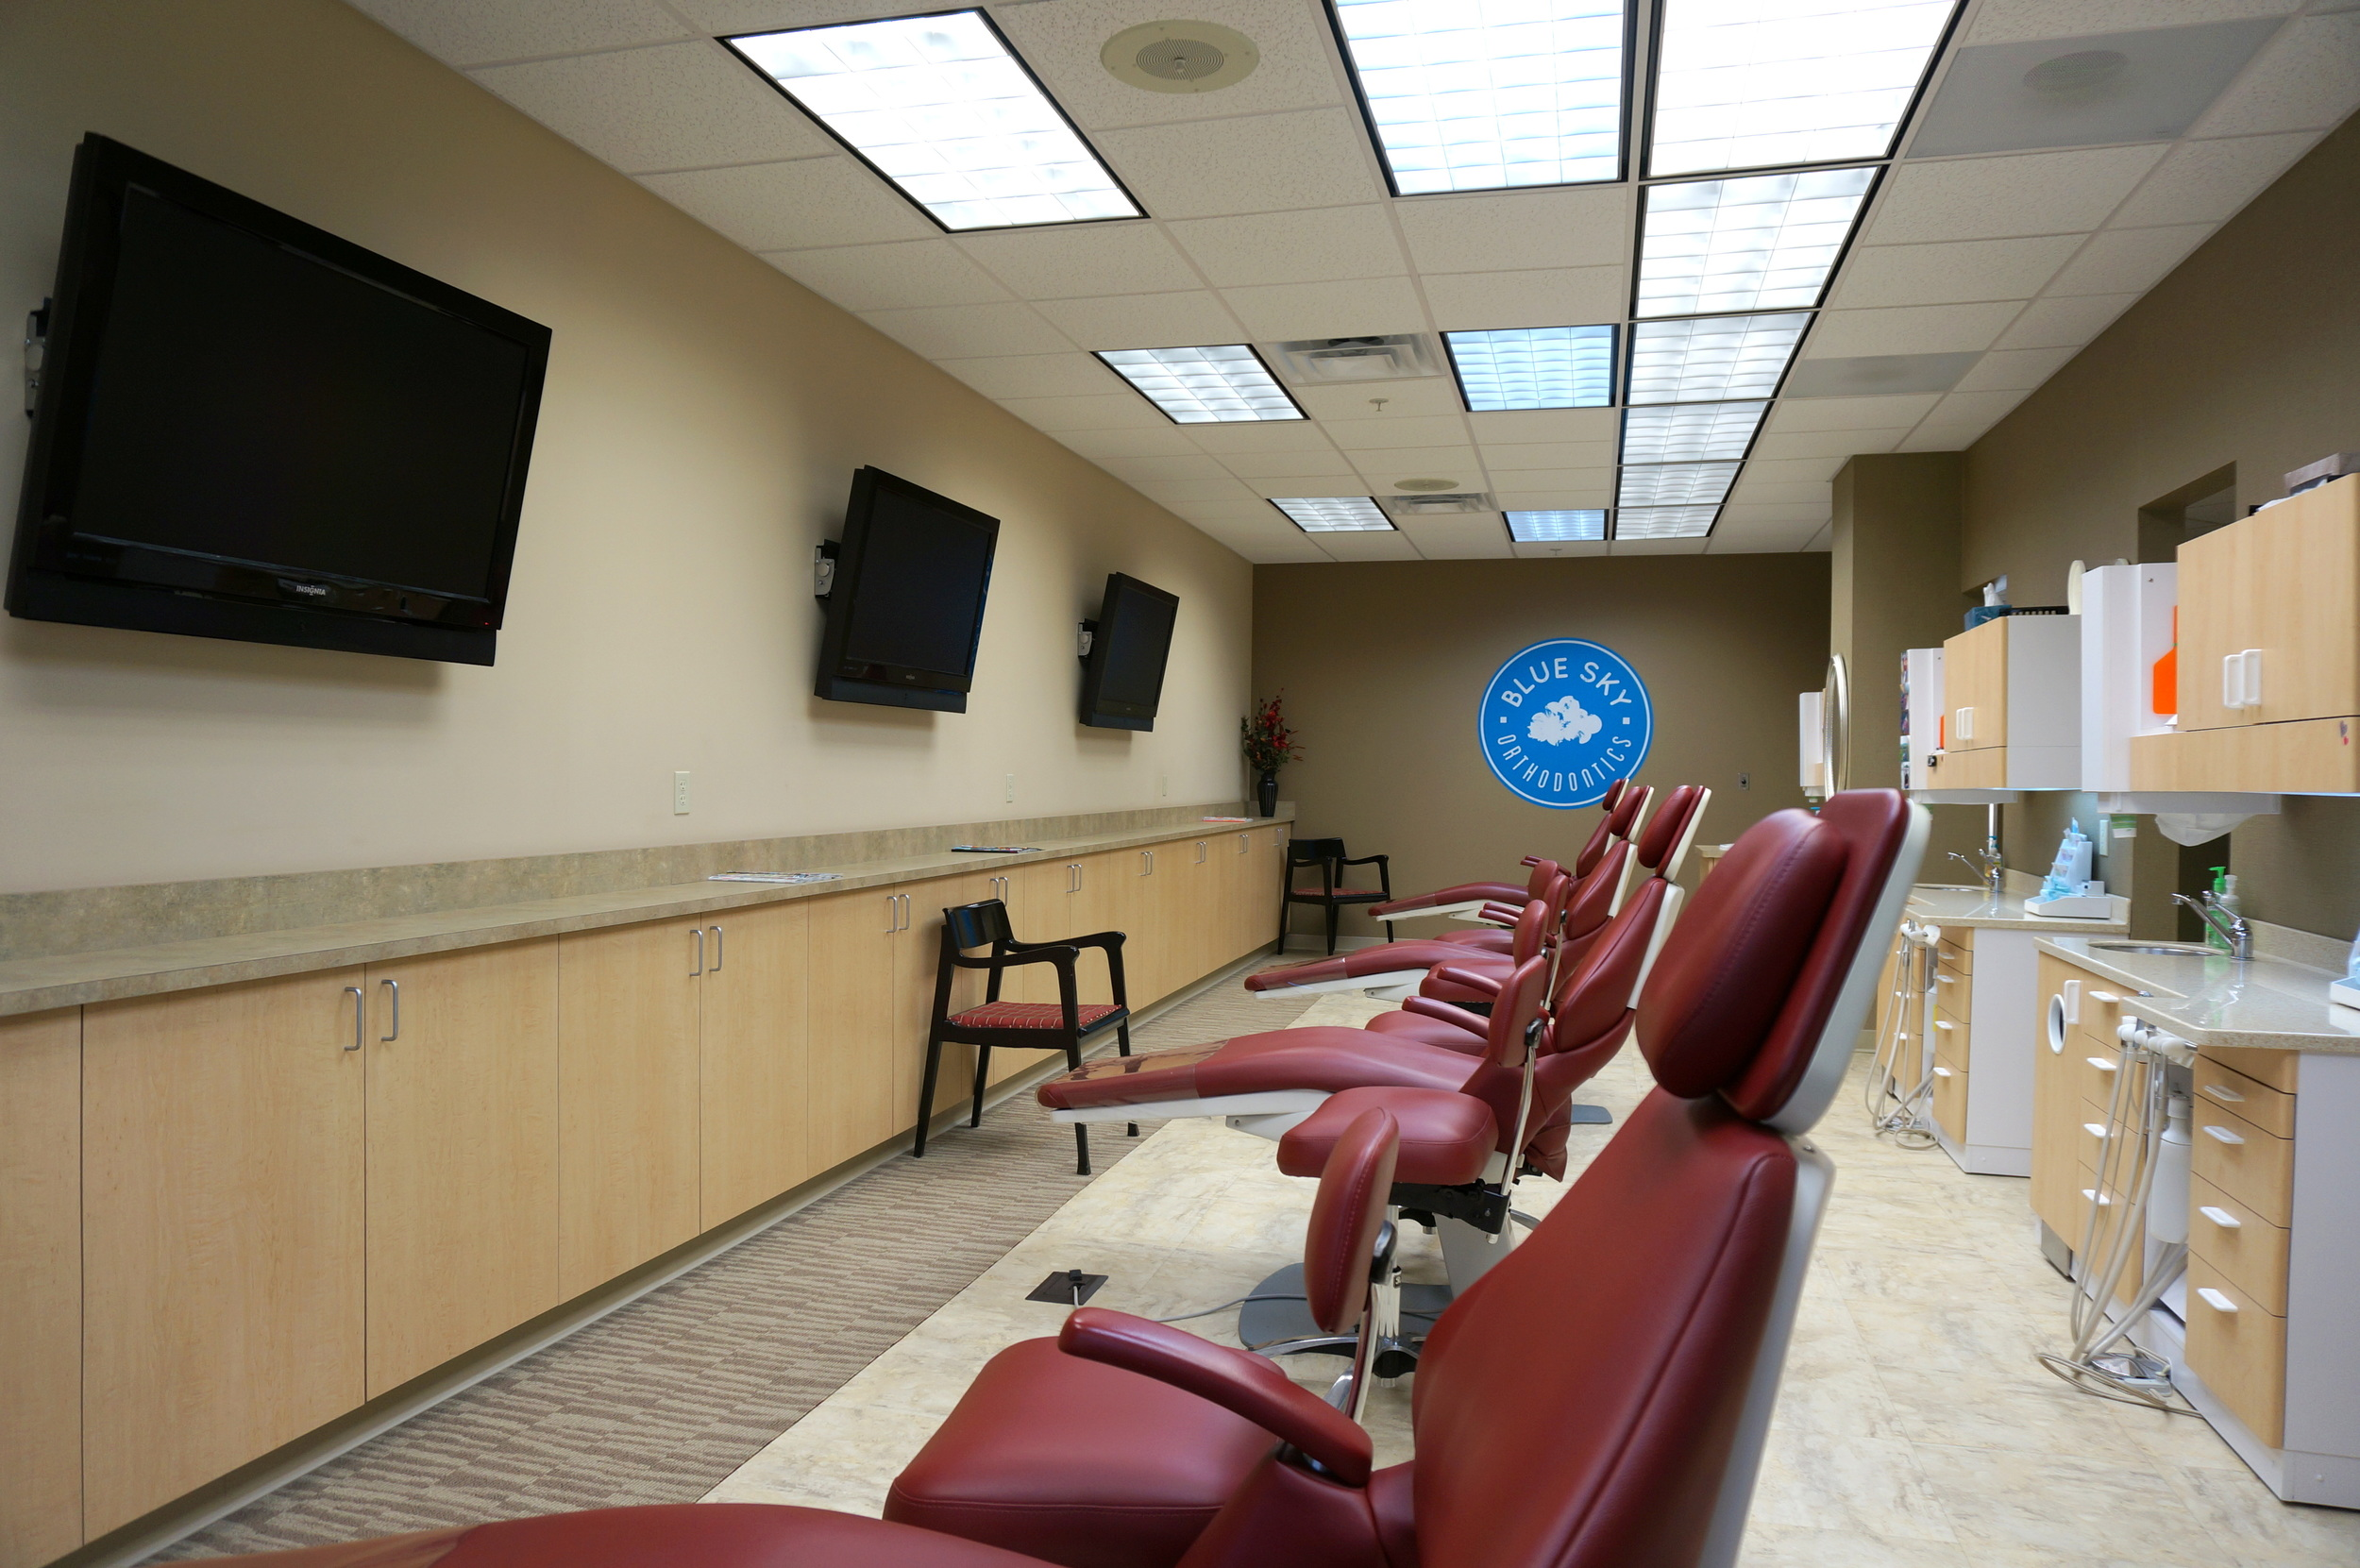 Our treatment bay with your favorite shows